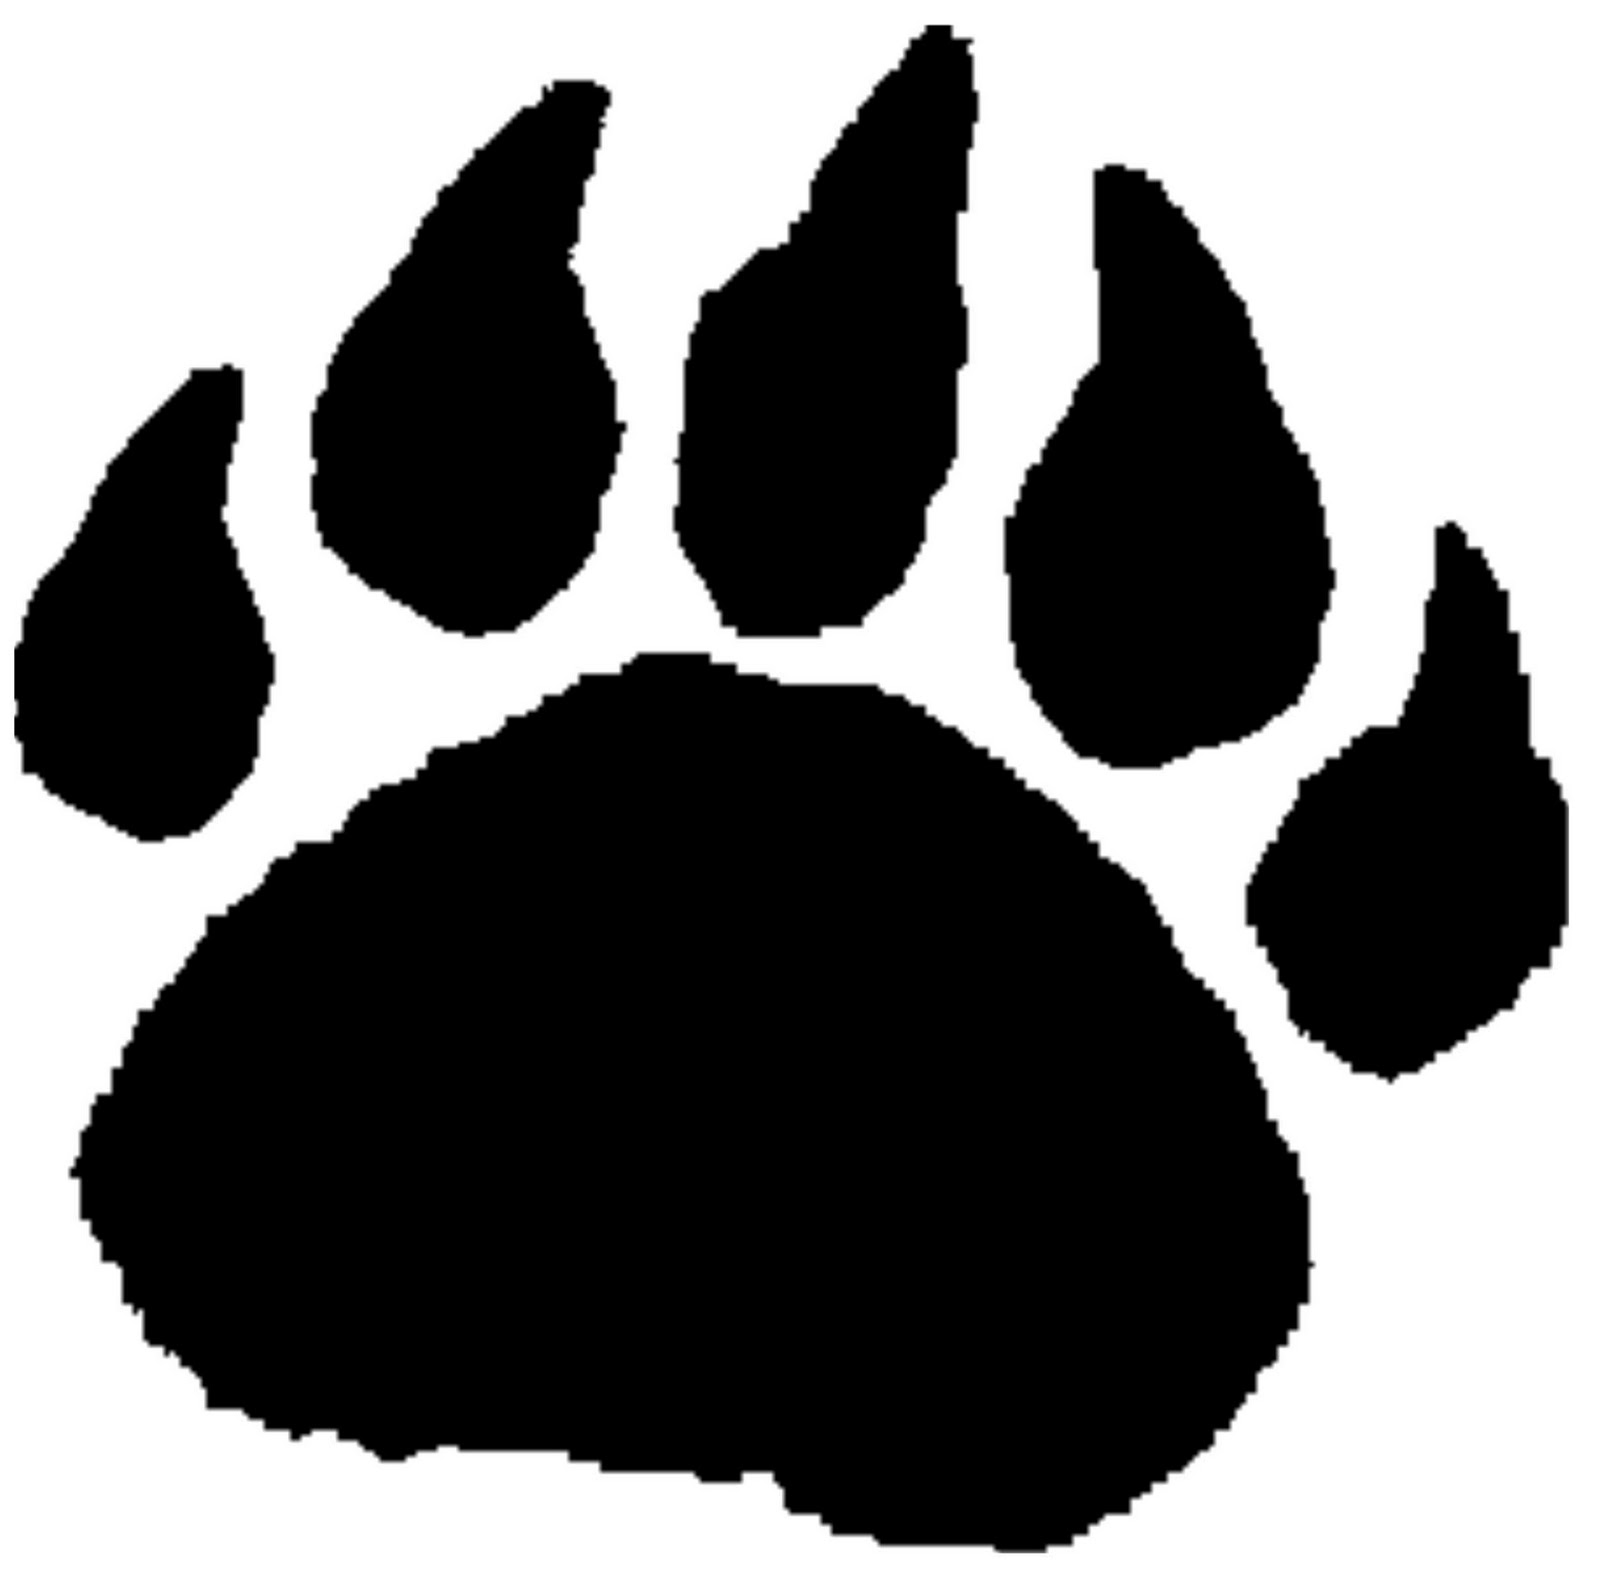 Bear black and white clipart bear paw clip Free Bear Paw Print, Download Free Clip Art, Free Clip Art on ... clip